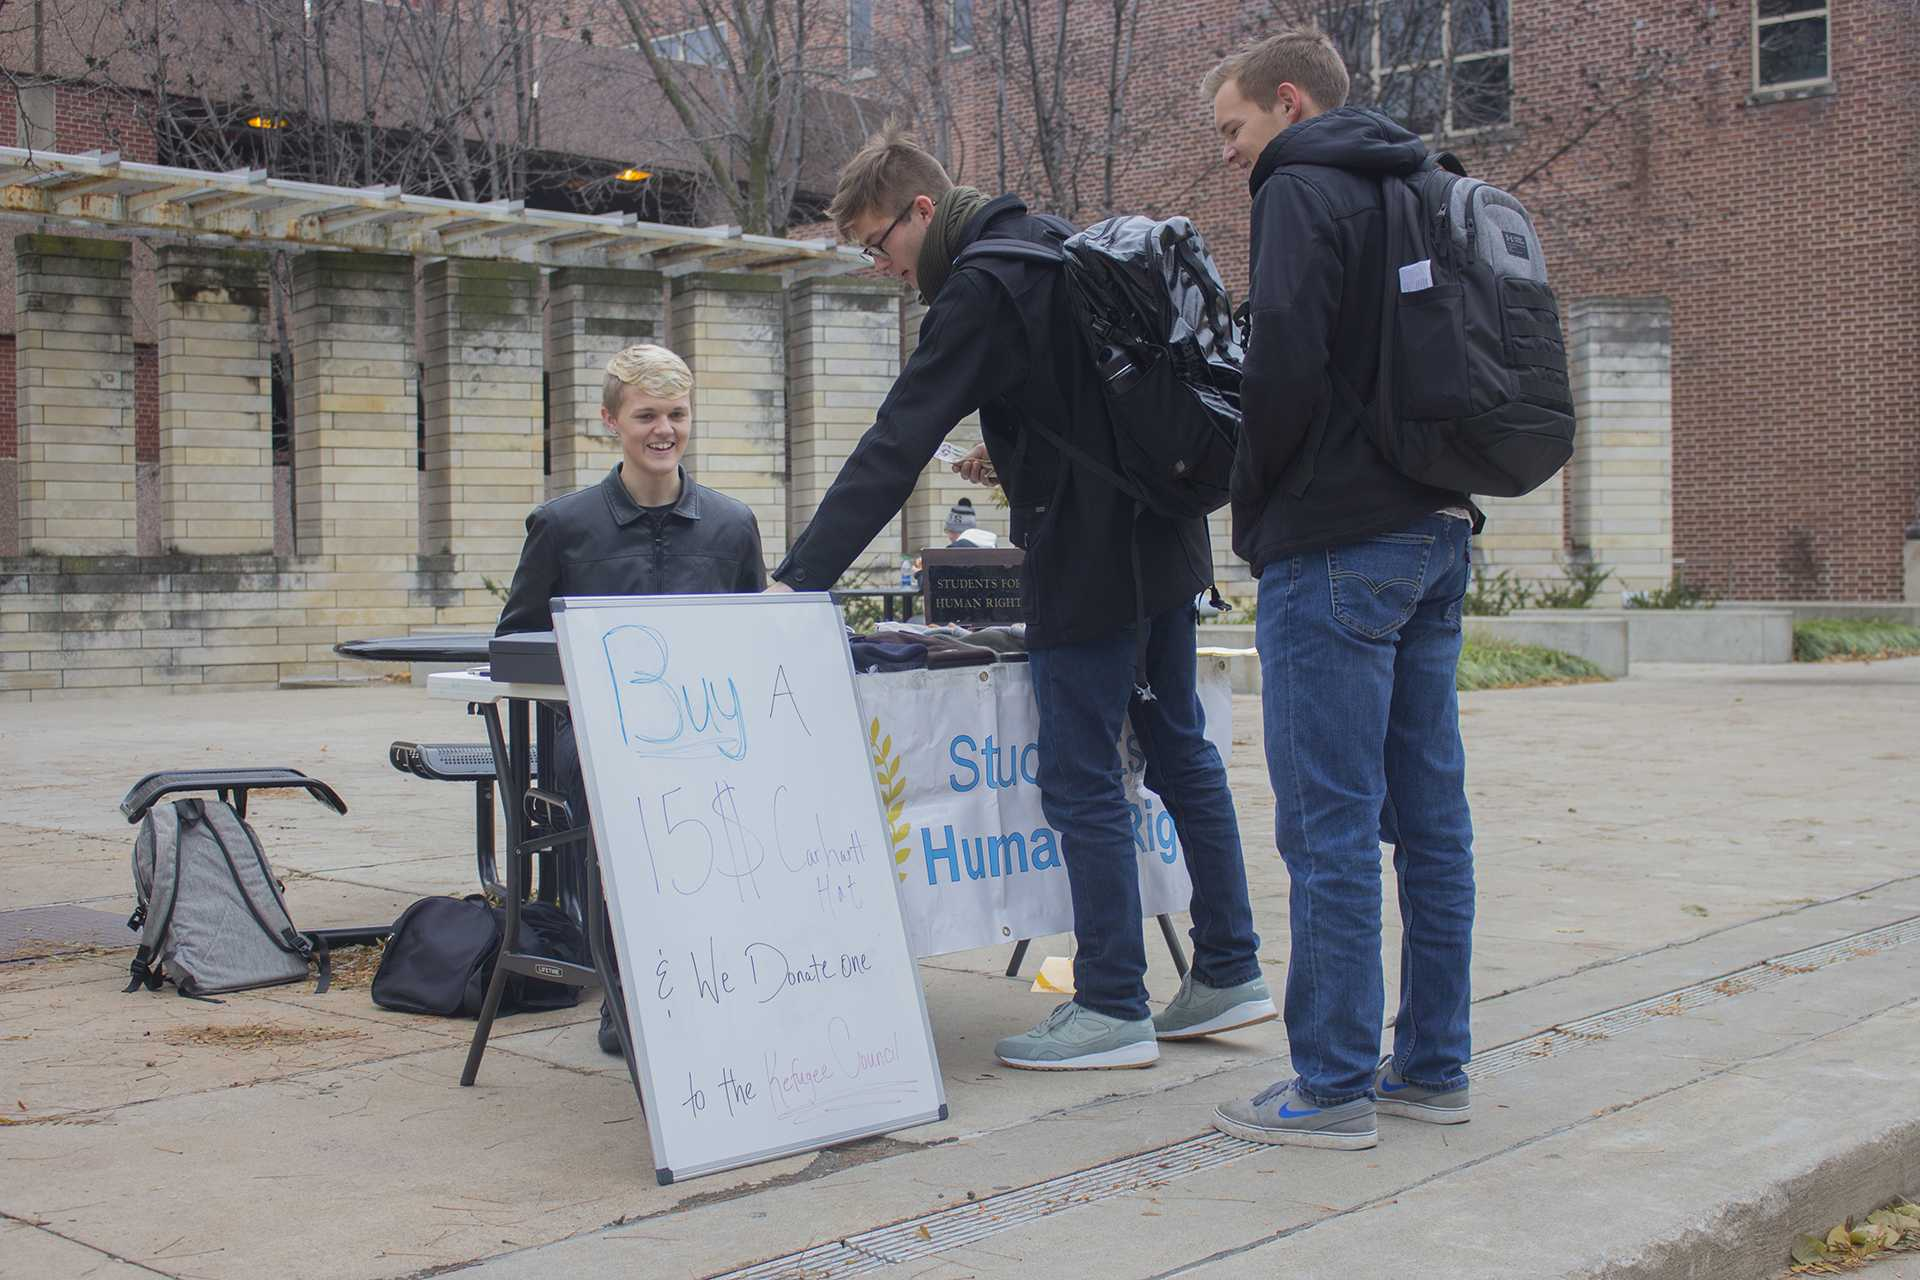 UI sophomore and Students for Human Rights representitive Jon Seedorff sells Carhartt hats on the T. Anne Cleary Walkway on Monday, Nov. 13, 2017. Students for Human Rights is also hosting an All You Can Eat Pancake Palooza on Thursday, Nov. 16 from 5 p.m. to 9 p.m. at Old Brick Church, with all the proceeds from both fundraisers doing to the Refugee Council USA to support refugees both domestically and abroad. (Lily Smith/The Daily Iowan)